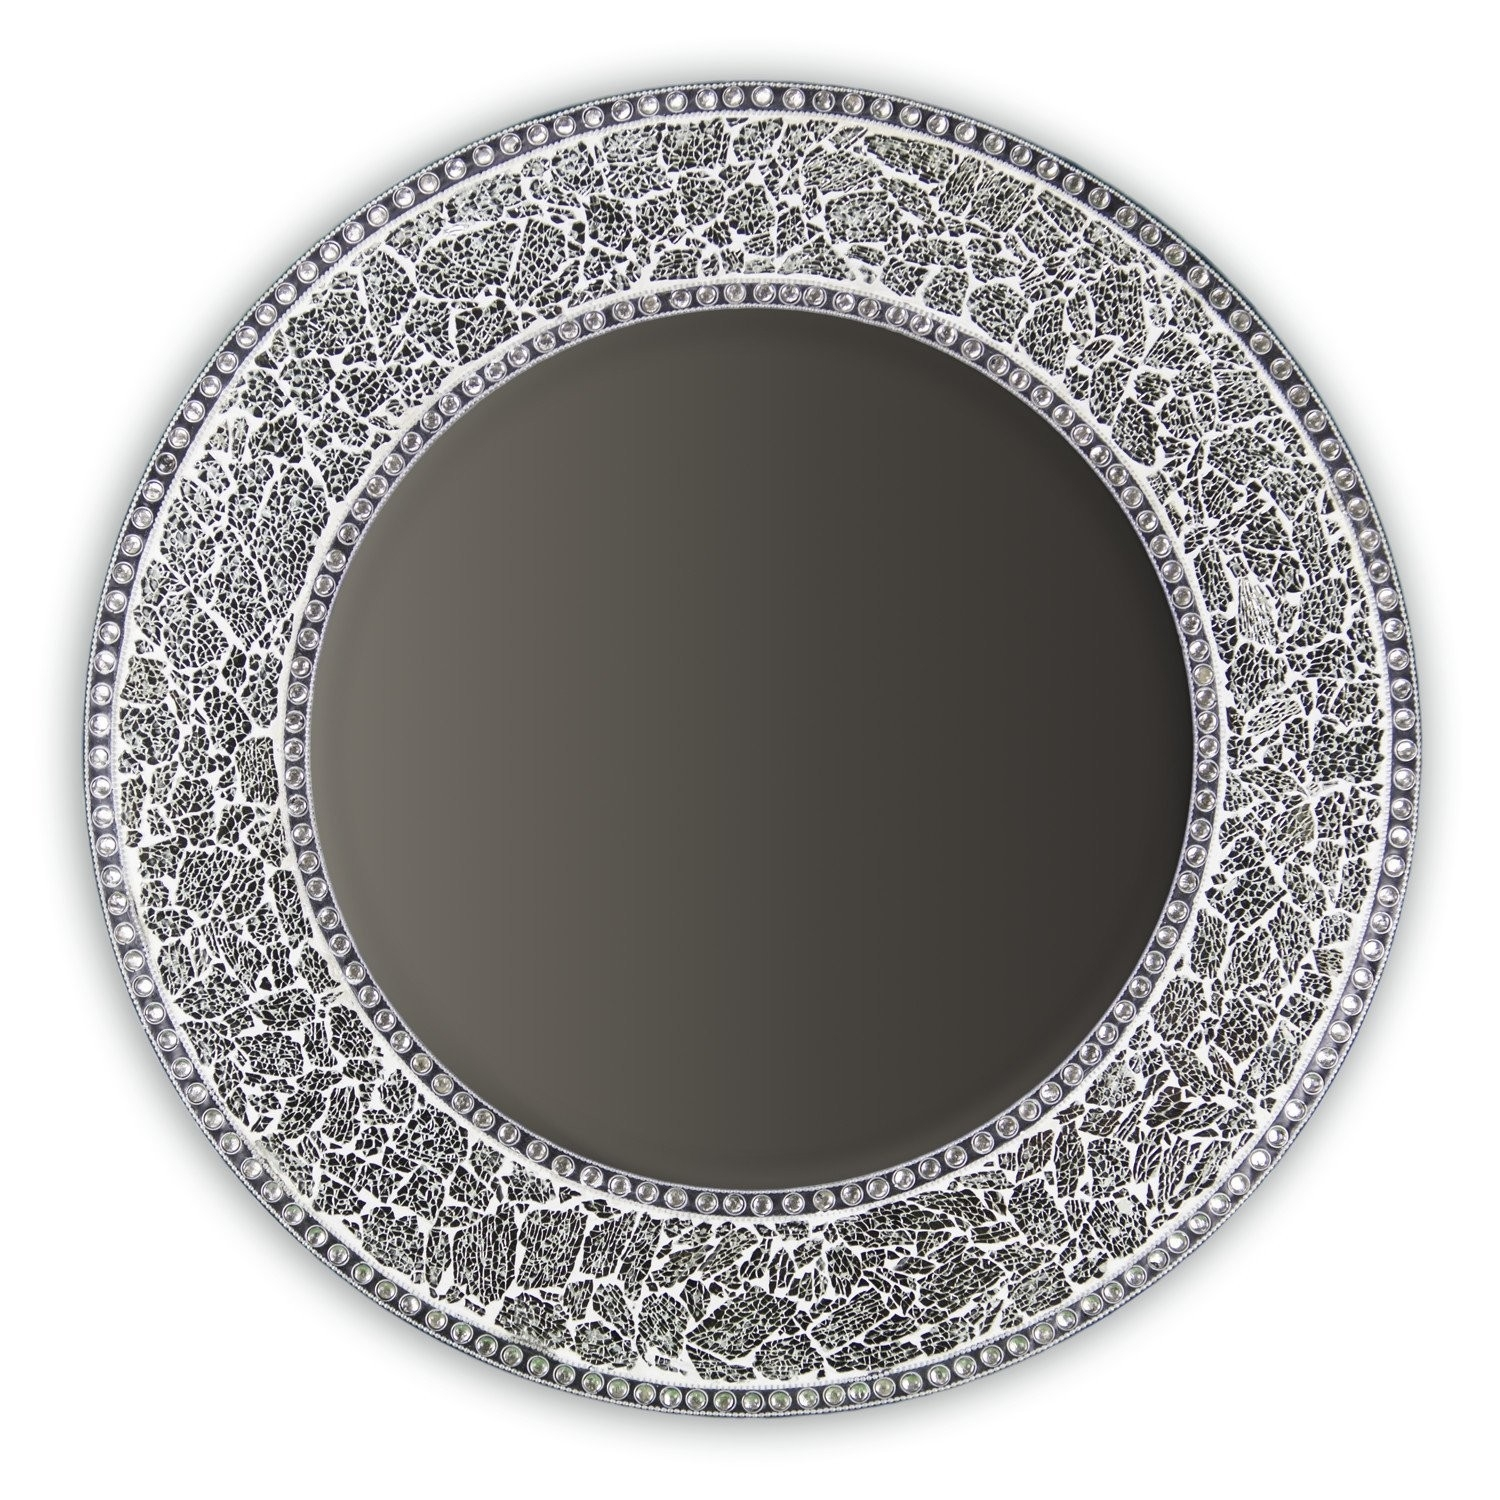 Buy 24 Silver Round Crackled Glass Mosaic Decorative Wall Mirror Regarding Round Mosaic Wall Mirror (View 4 of 15)